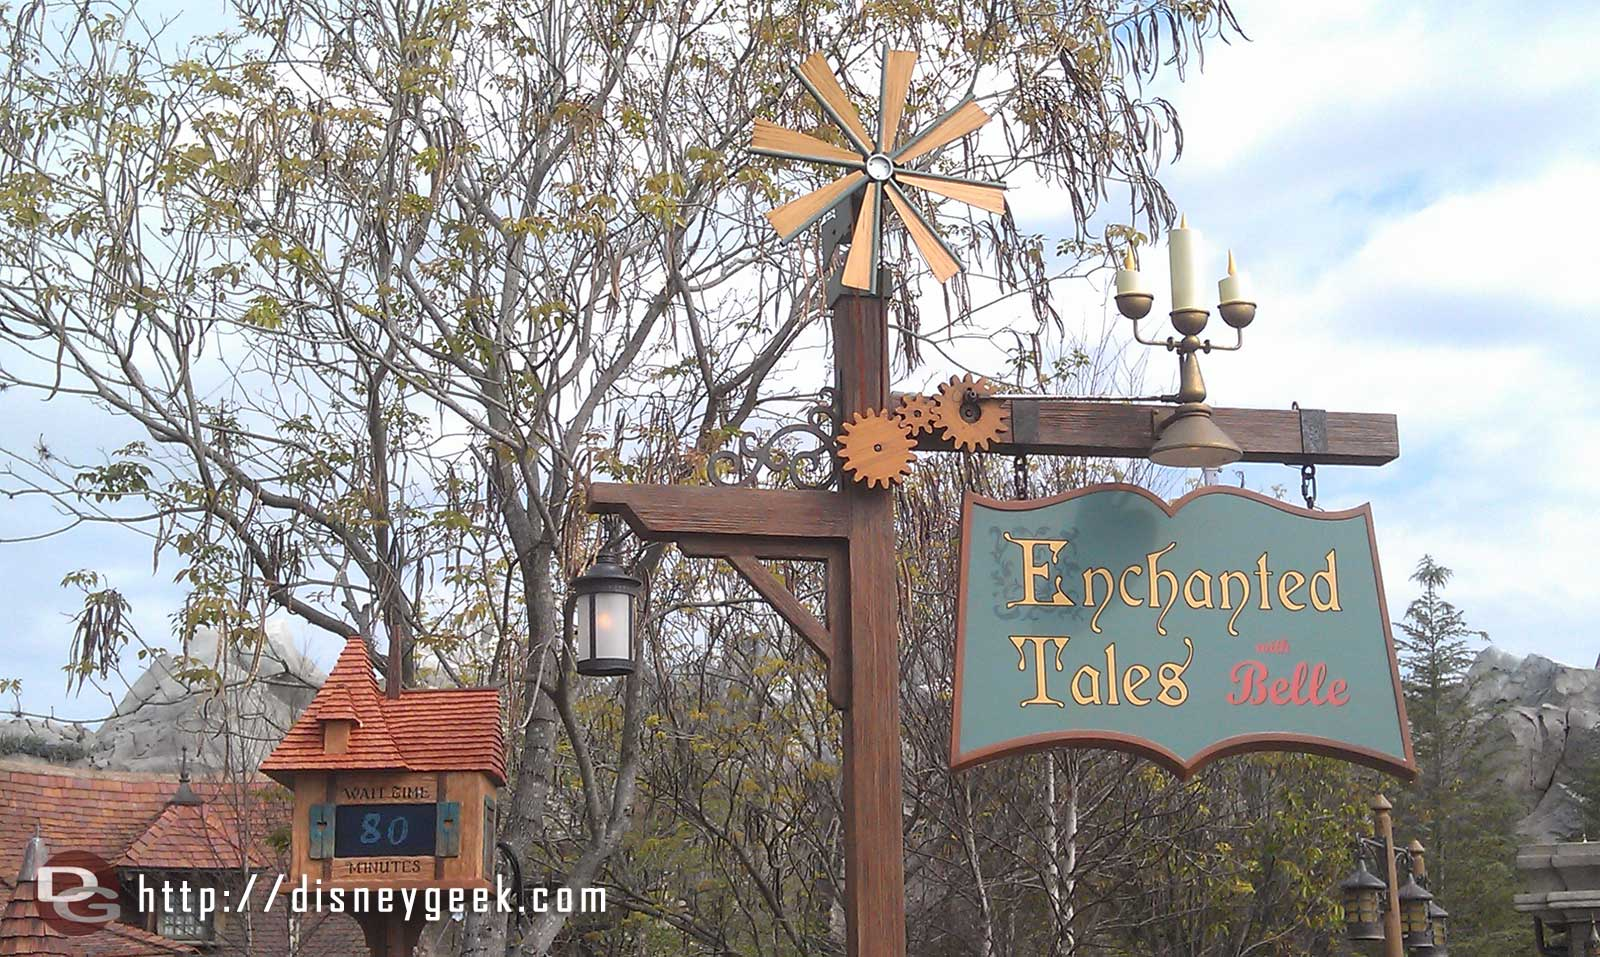 A posted 80 minute wait for Enchanted Tales with Belle this morning